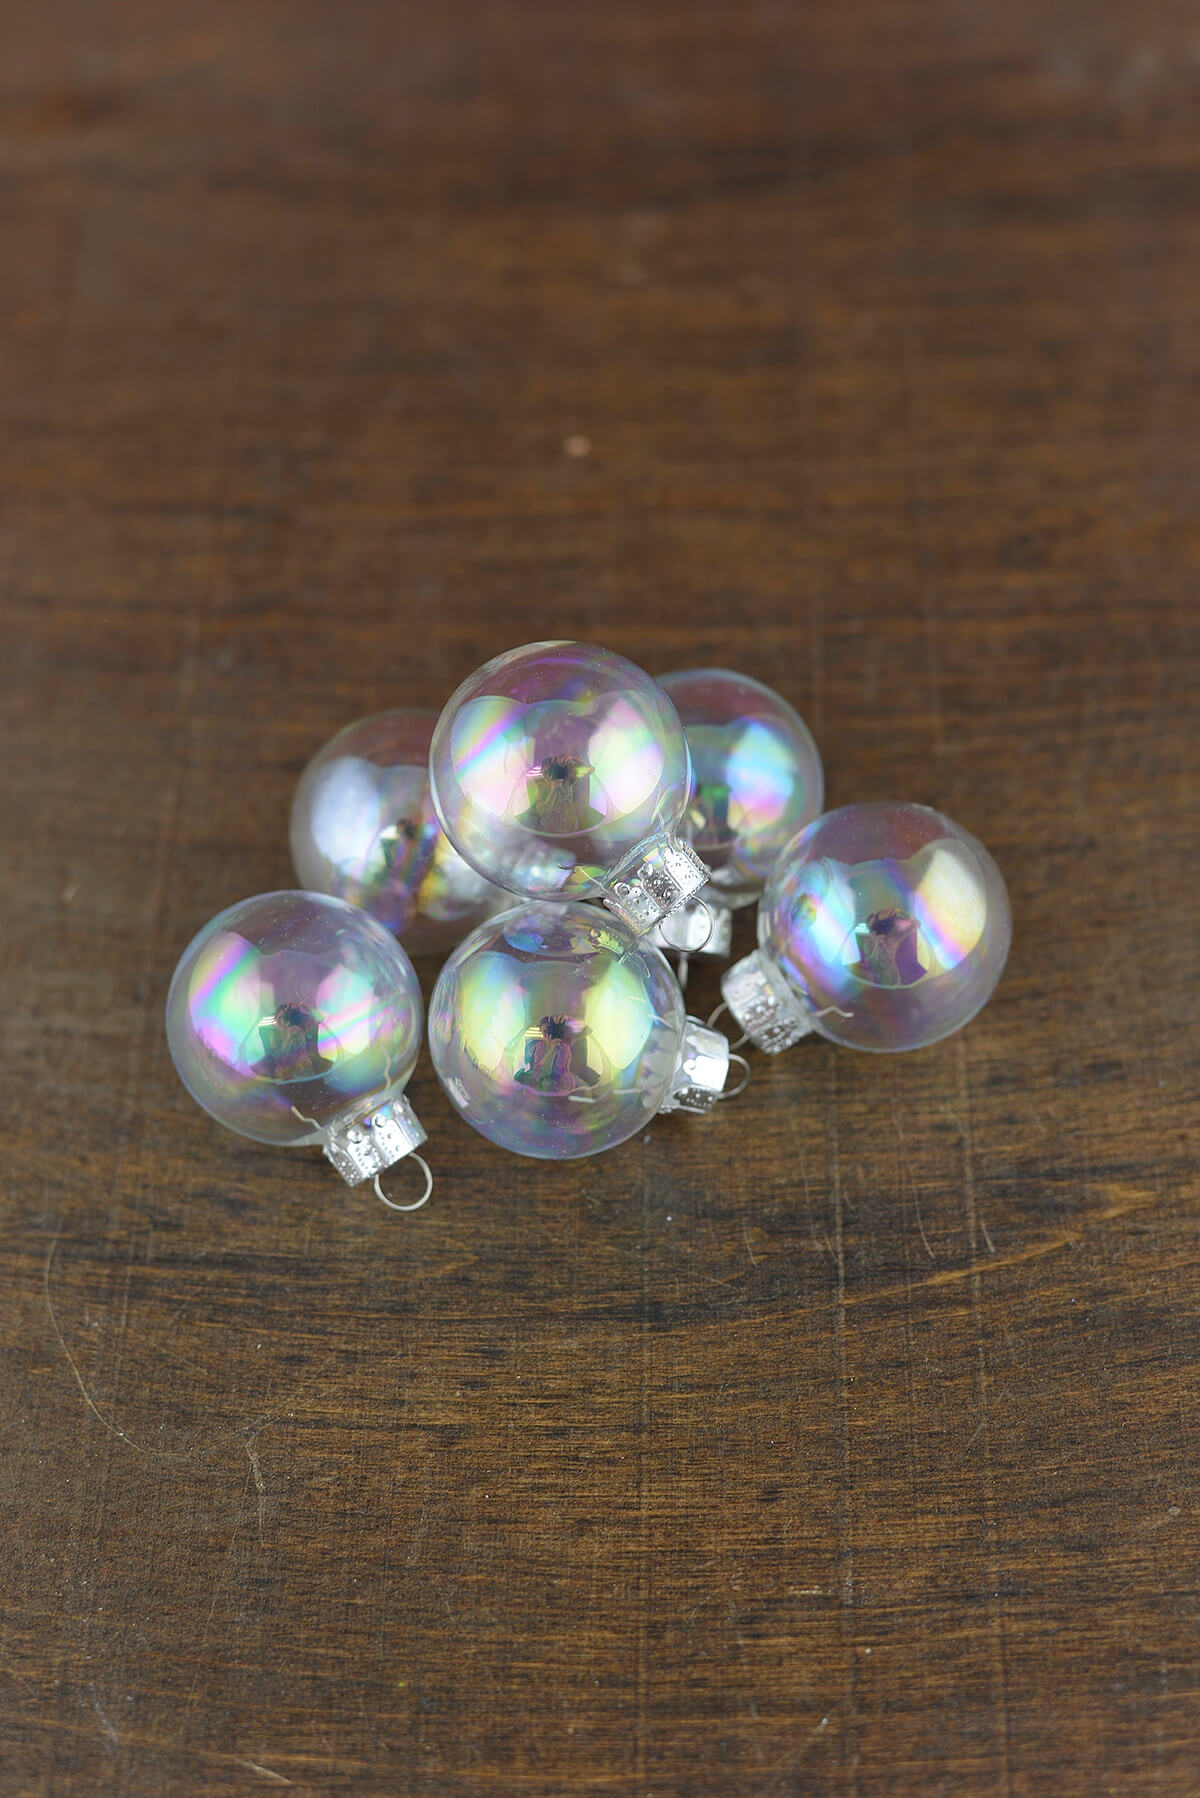 20 Clear Glass 1 37in Ornament Balls Iridescent 35mm